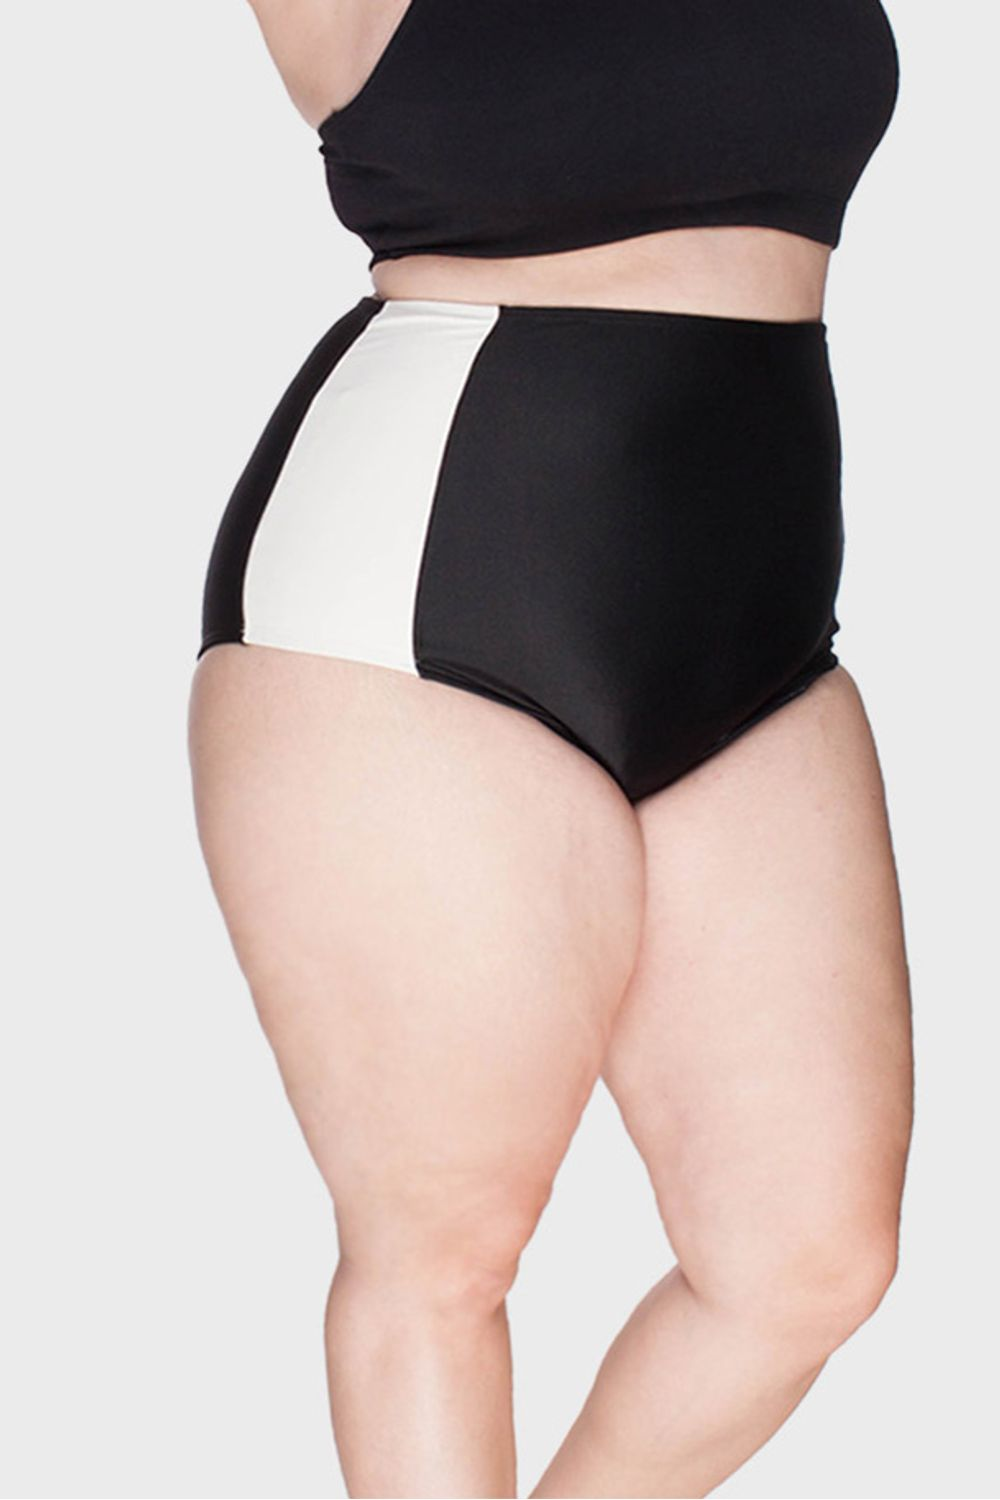 Parte-de-Baixo-Hot-Pants-Faixas-Plus-Size_T1